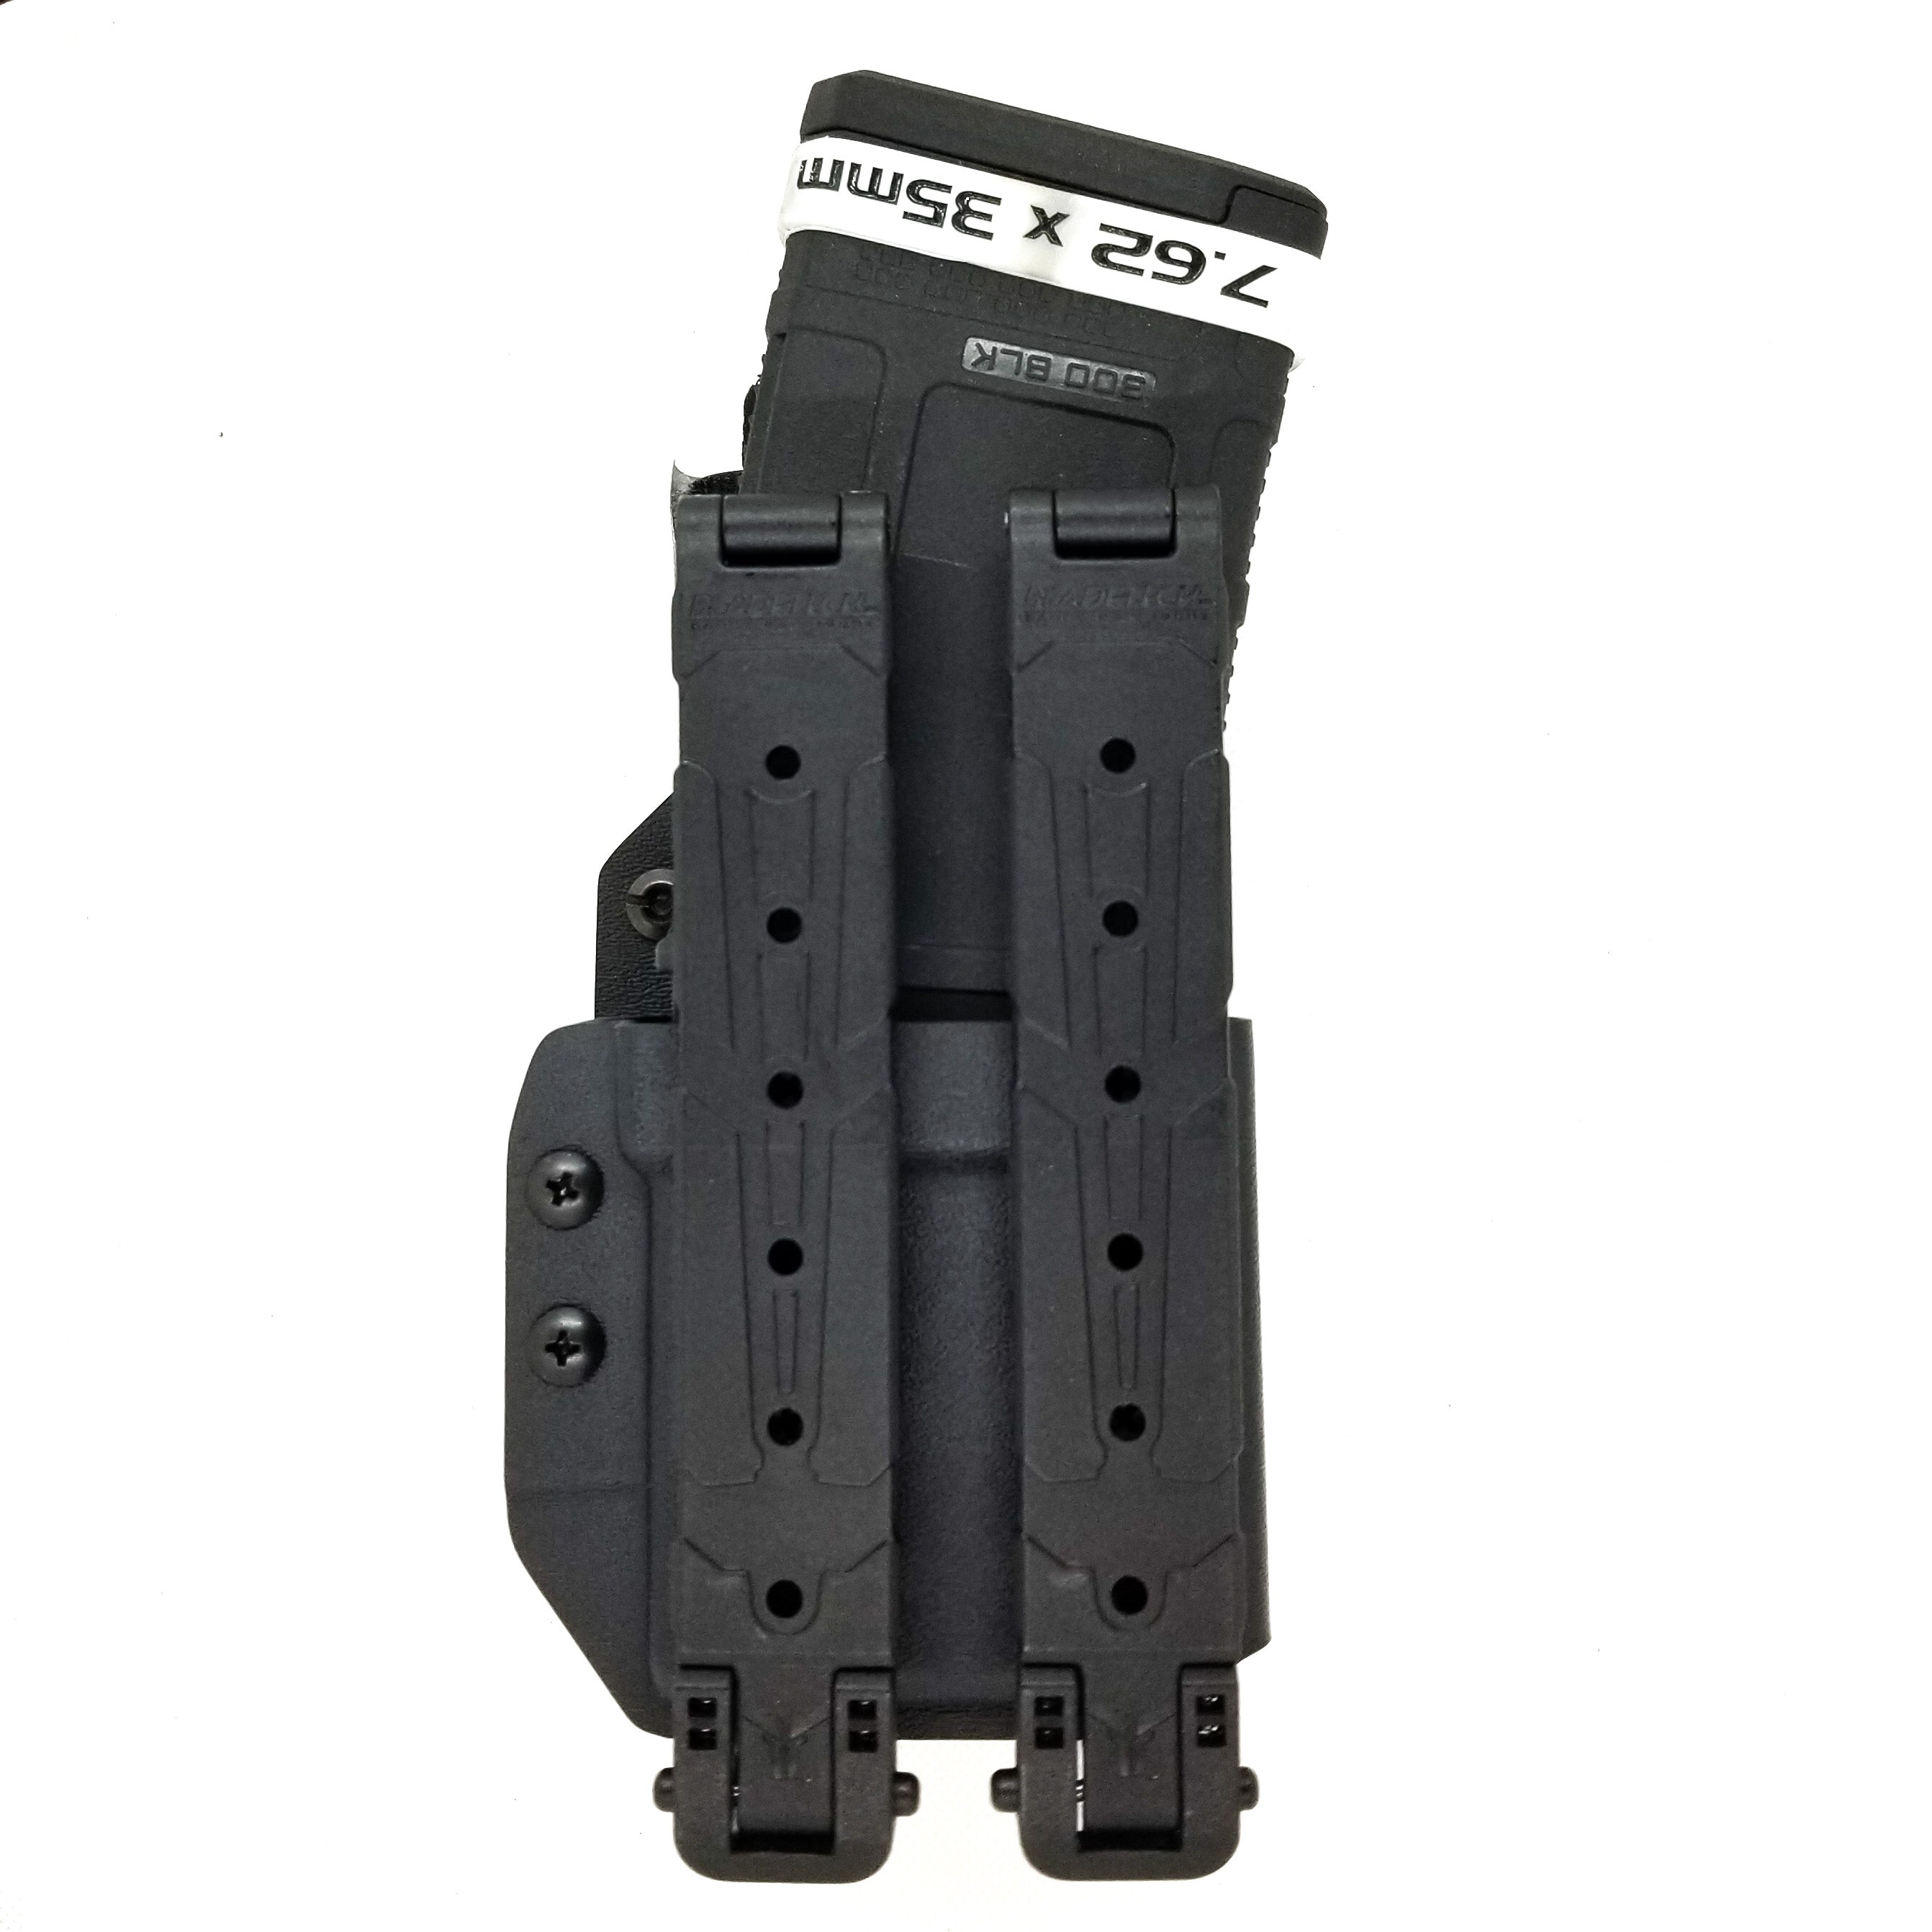 C-A-T & AR Mag Combo Carrier